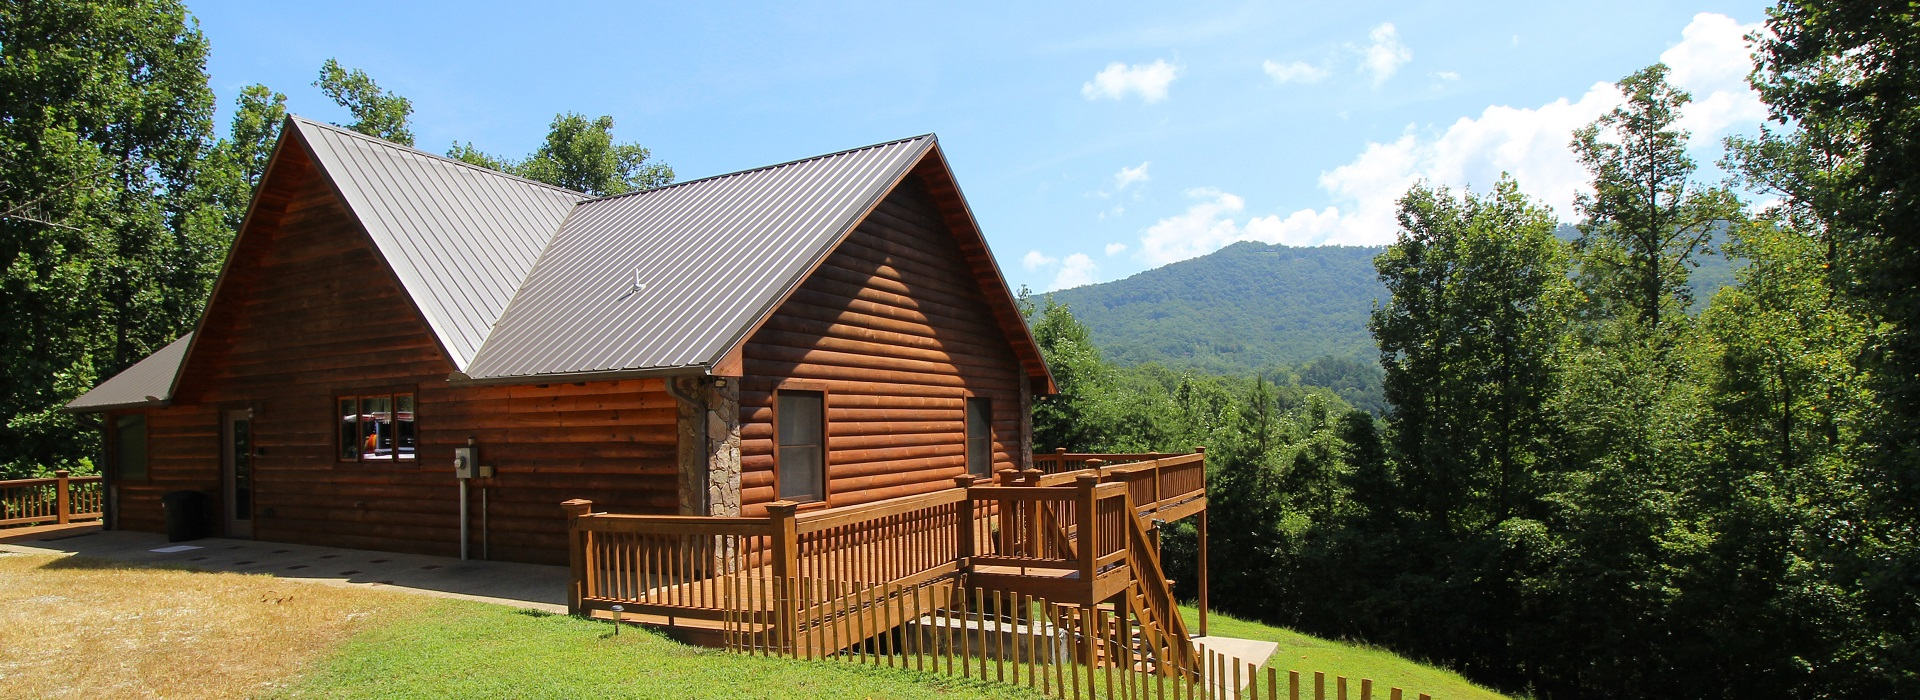 cabin cabins chattanooga rentals townsend sky mountains vacation smoky homes mountain